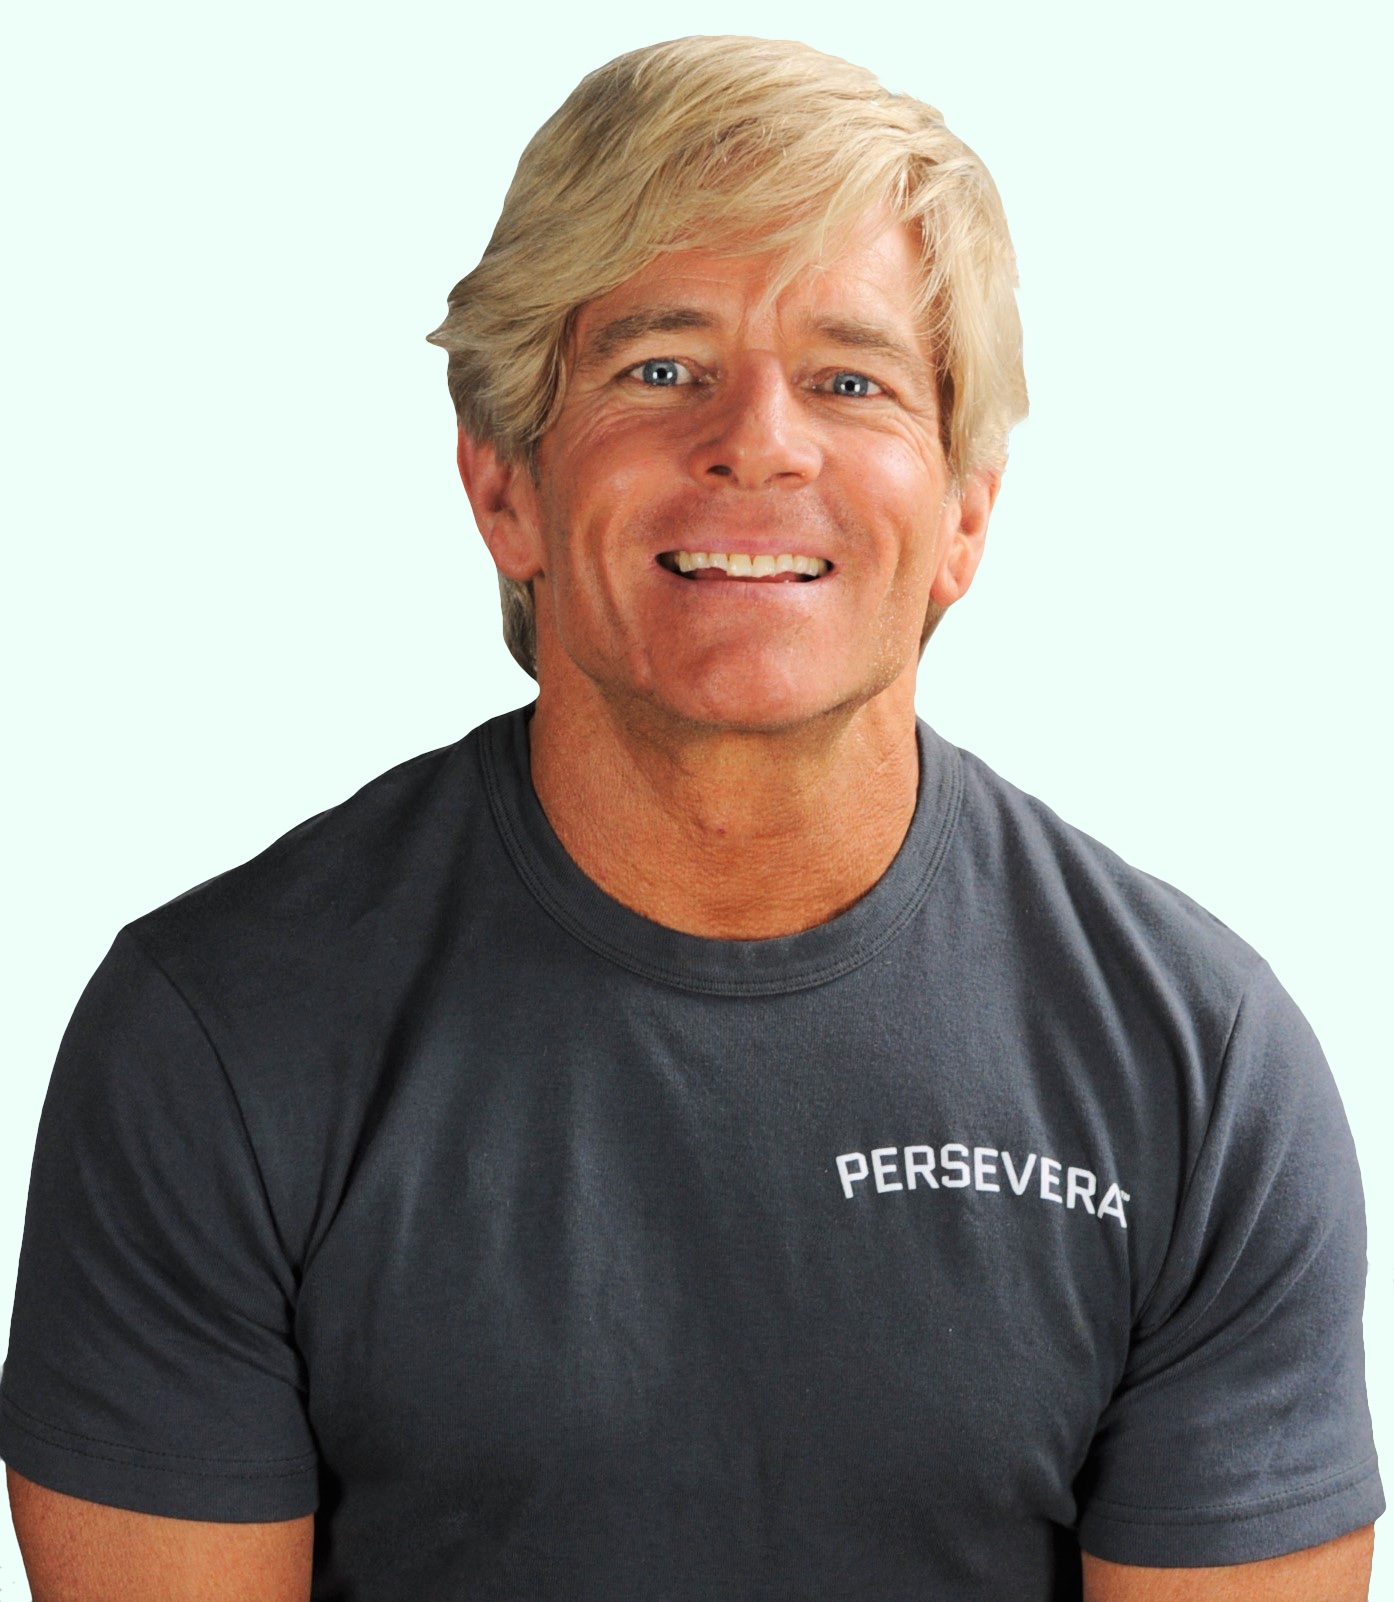 Guest Trainer NYC Persevera Roger Summerville